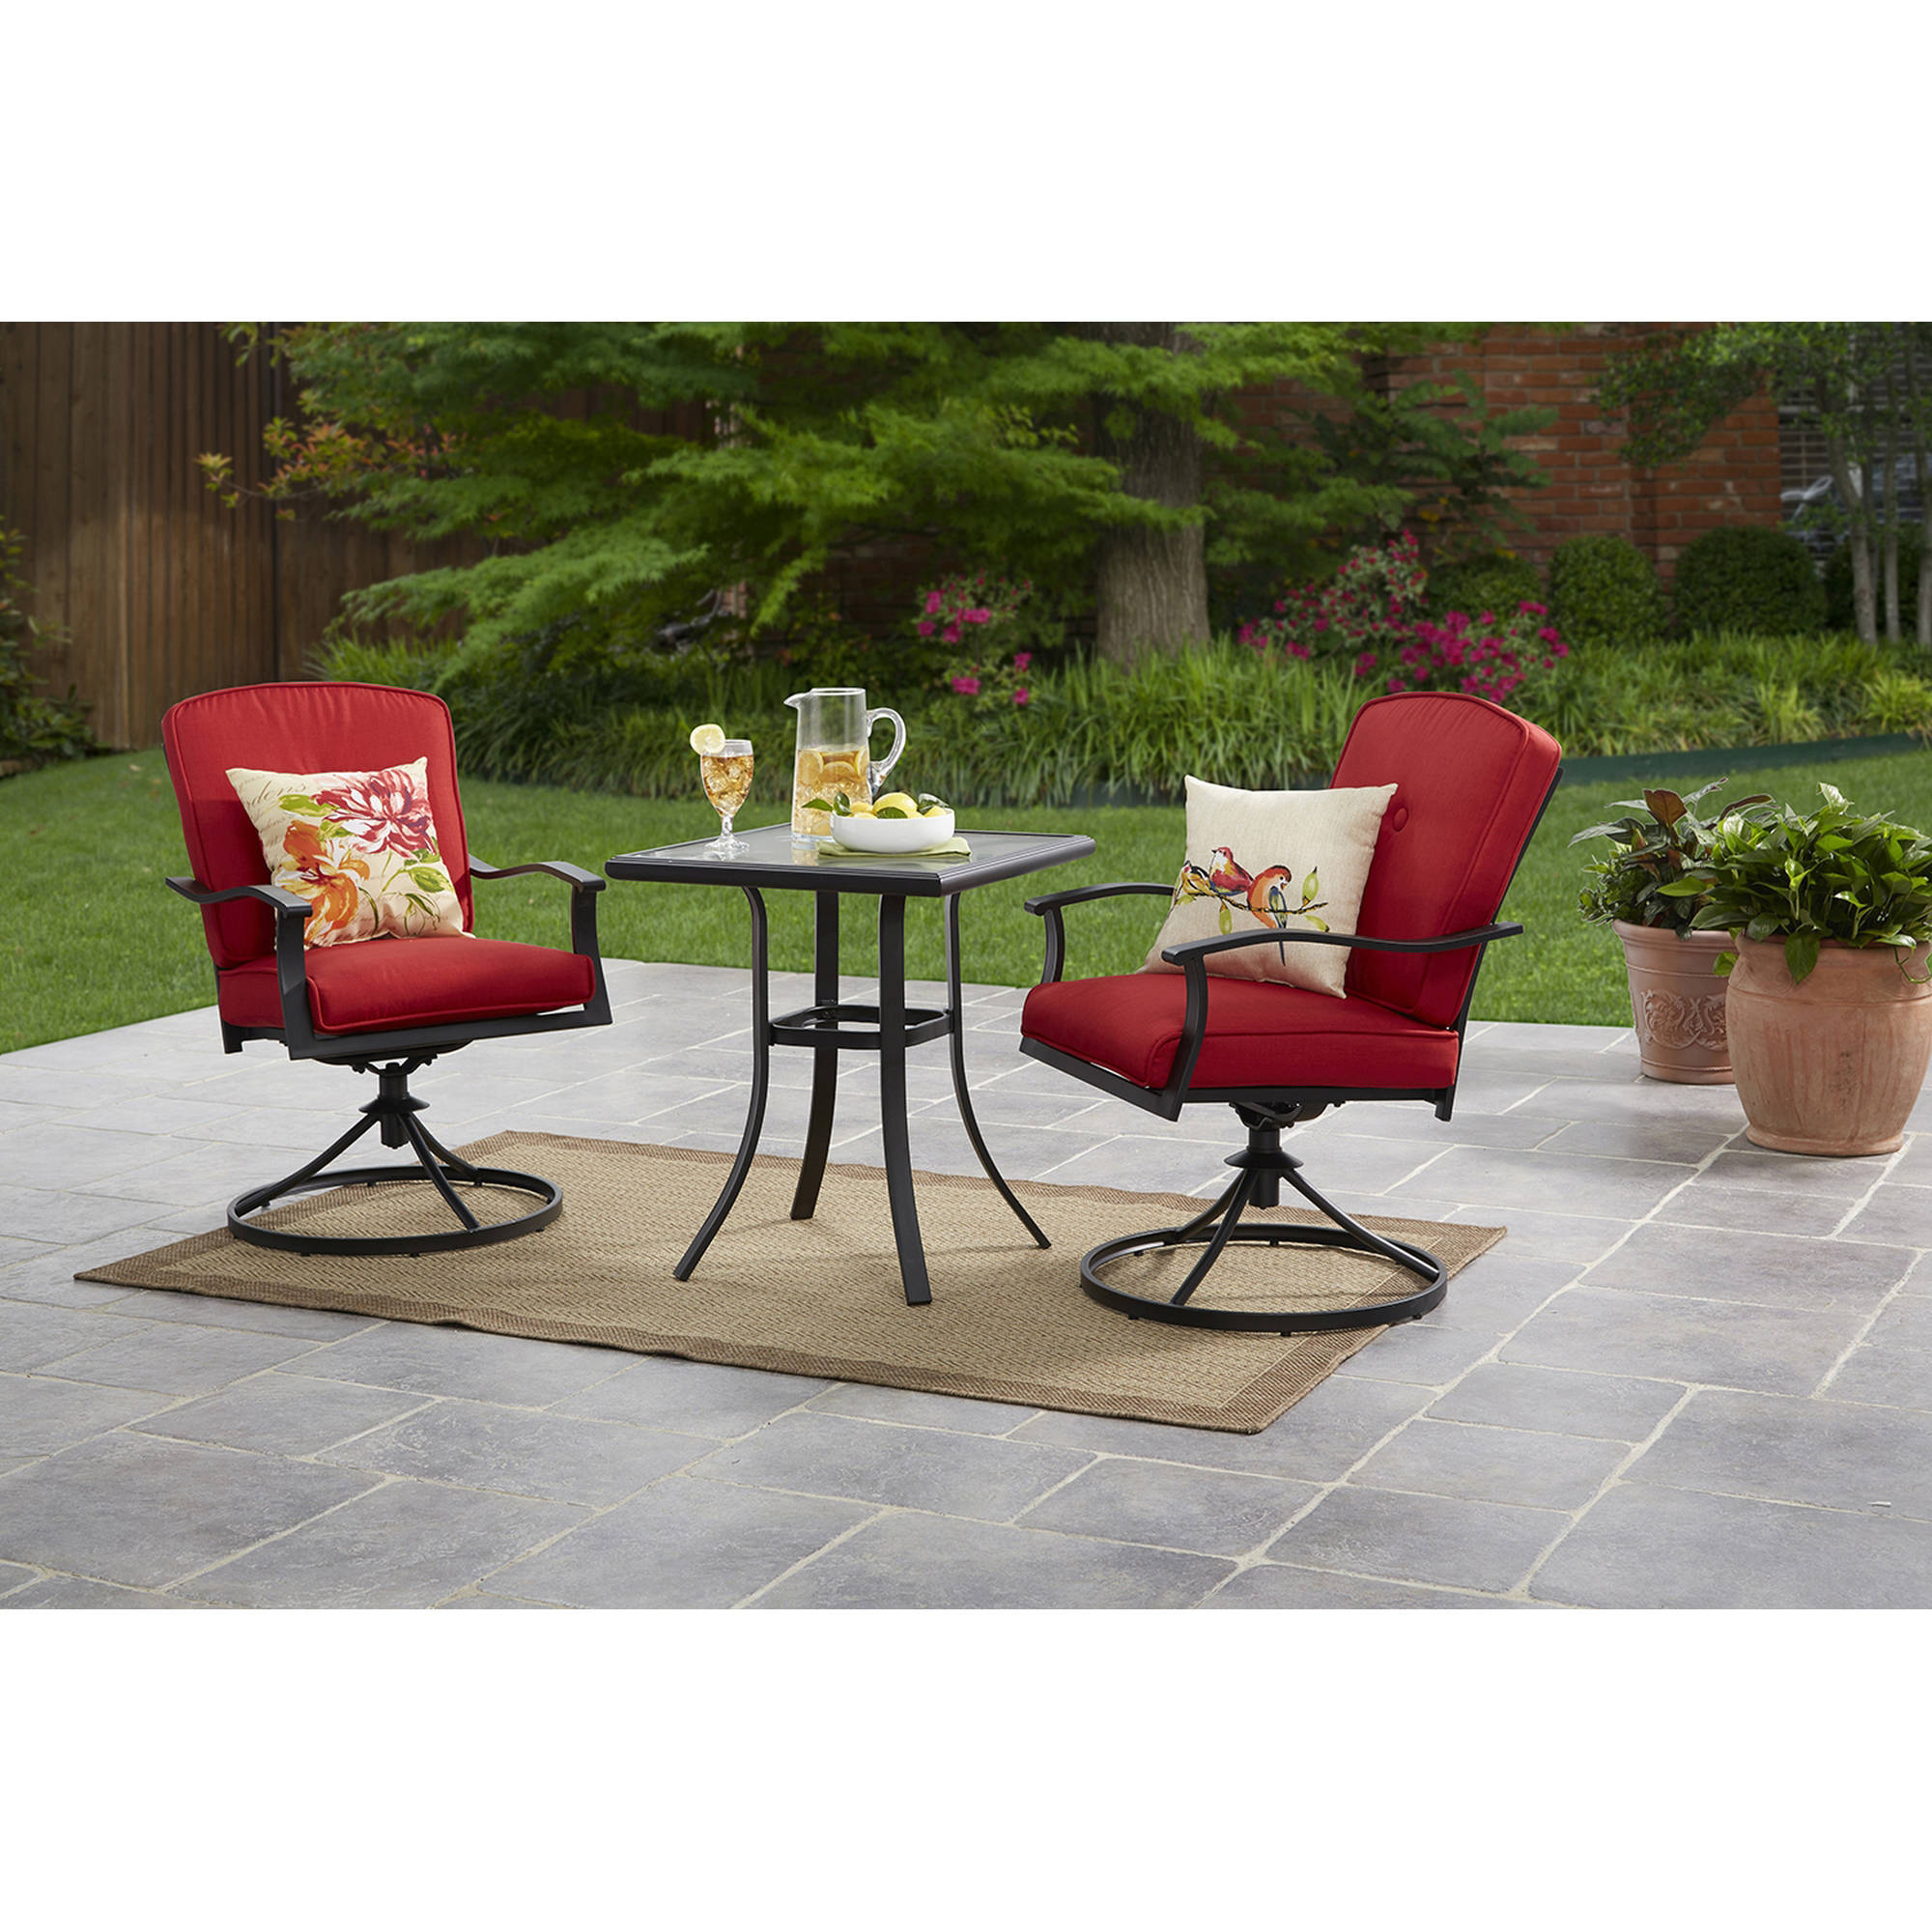 Mainstays Belden Park 3 Piece Outdoor Bistro Set For Patio And Porch Red